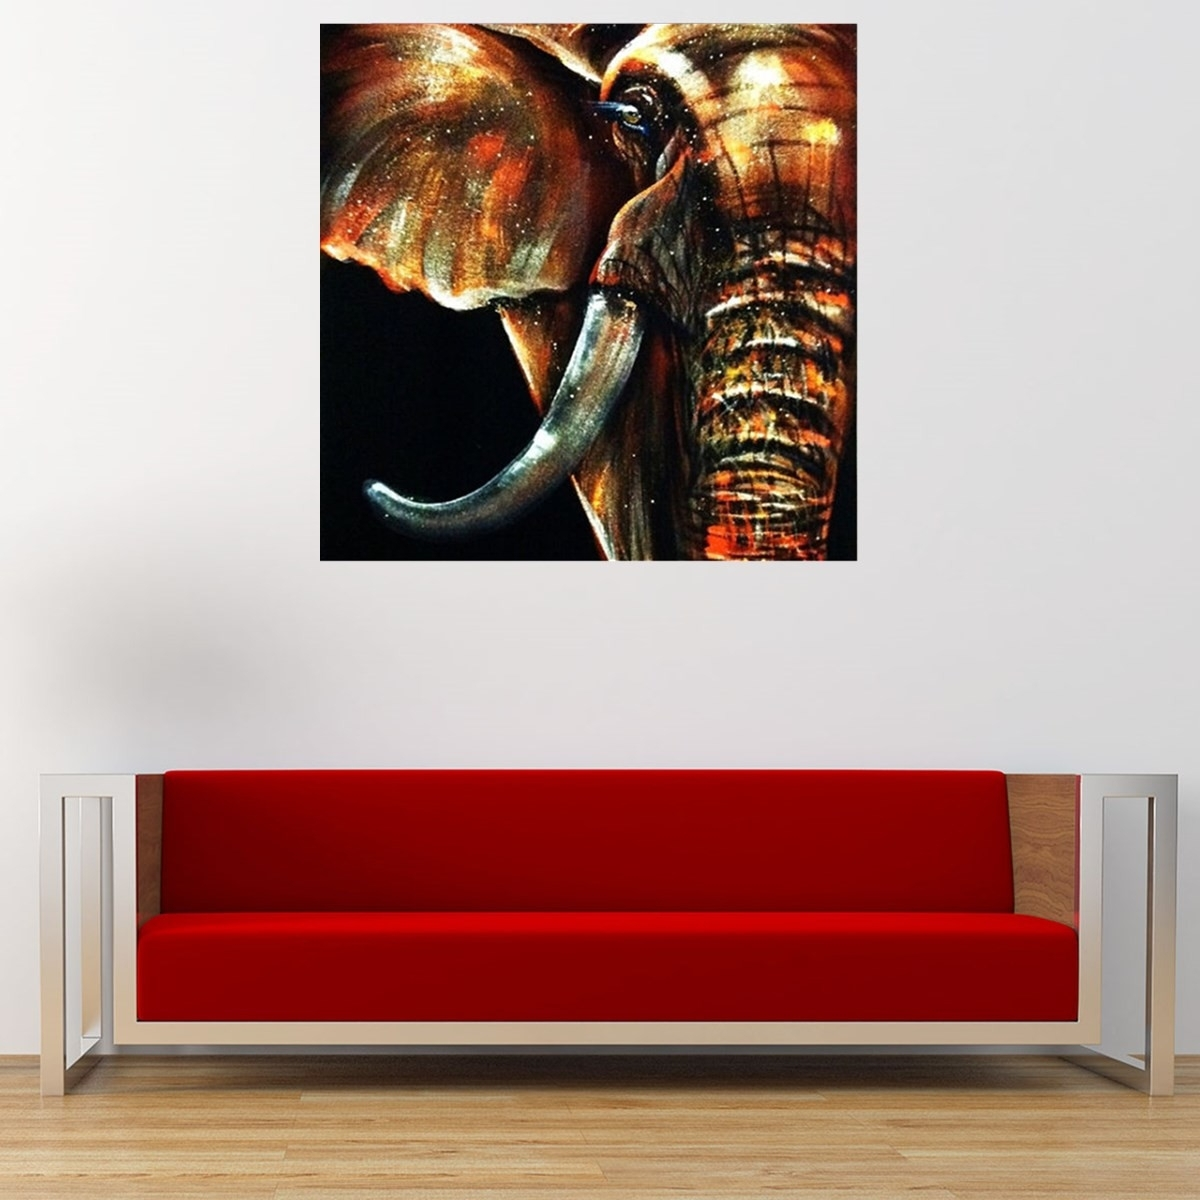 50X50Cm Modern Abstract Huge Elephant Wall Art Decor Oil Painting For Most Up To Date Abstract Elephant Wall Art (View 2 of 20)